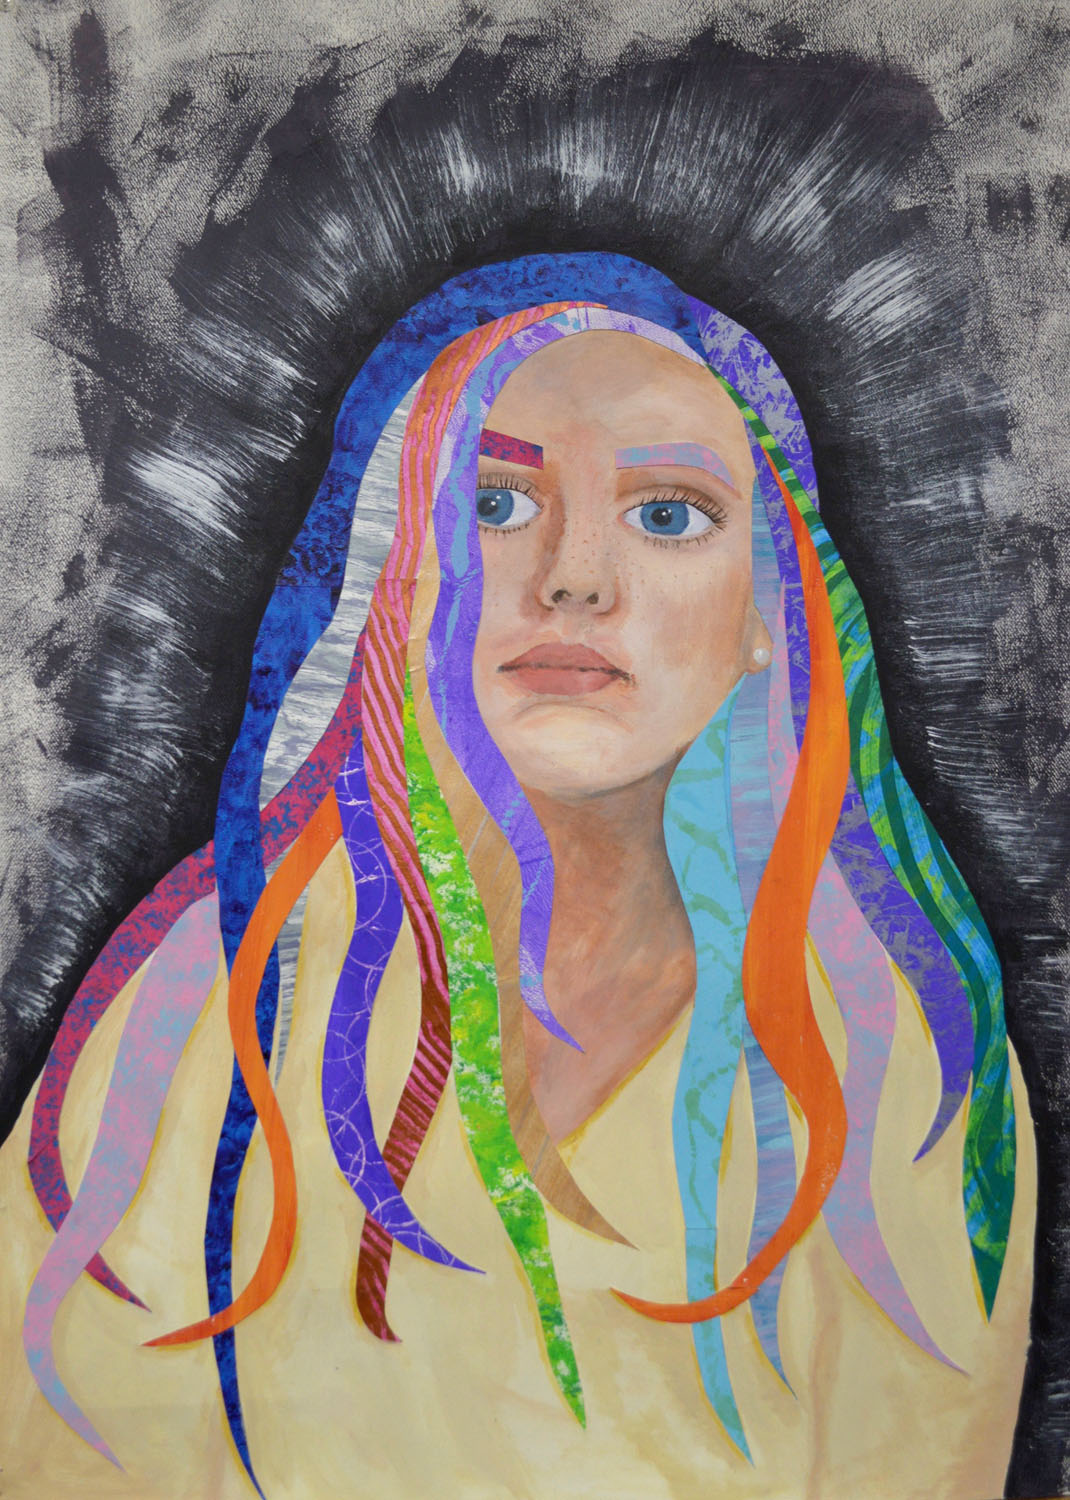 A self-portrait of a girl with multi-colored locks of hair framing her face and cascading down her s